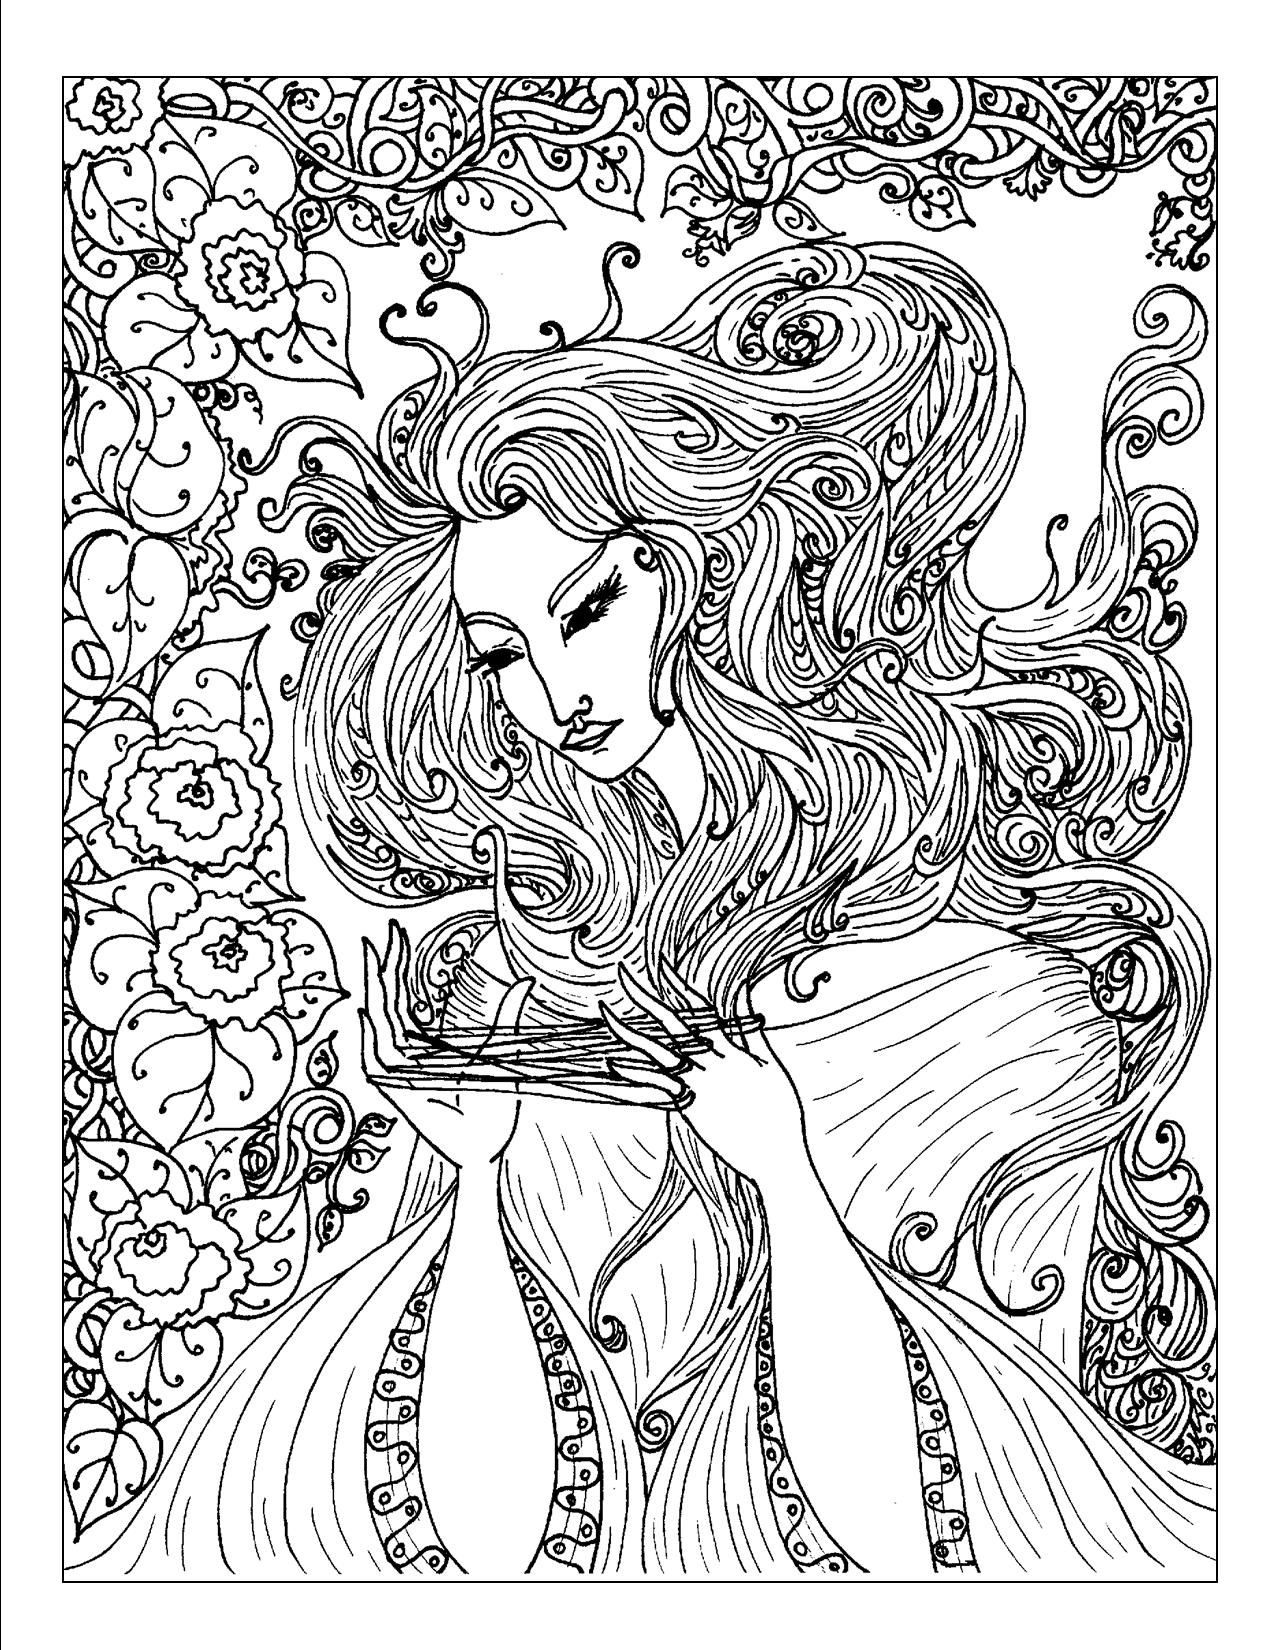 1275x1650 Art Nouveau Coloring Pages S Mac S Place To Be New Coloring Sheets